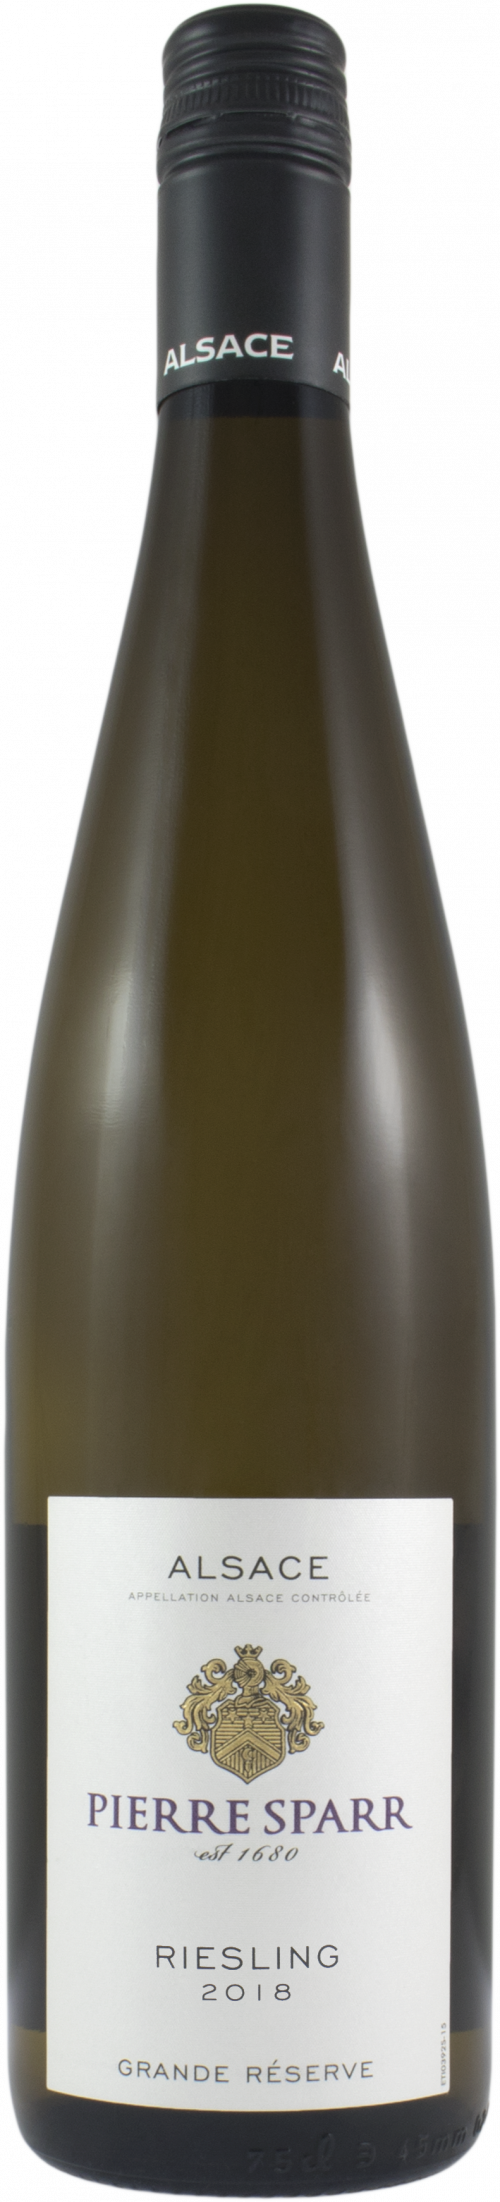 2018 Pierre Sparr Riesling 750ml